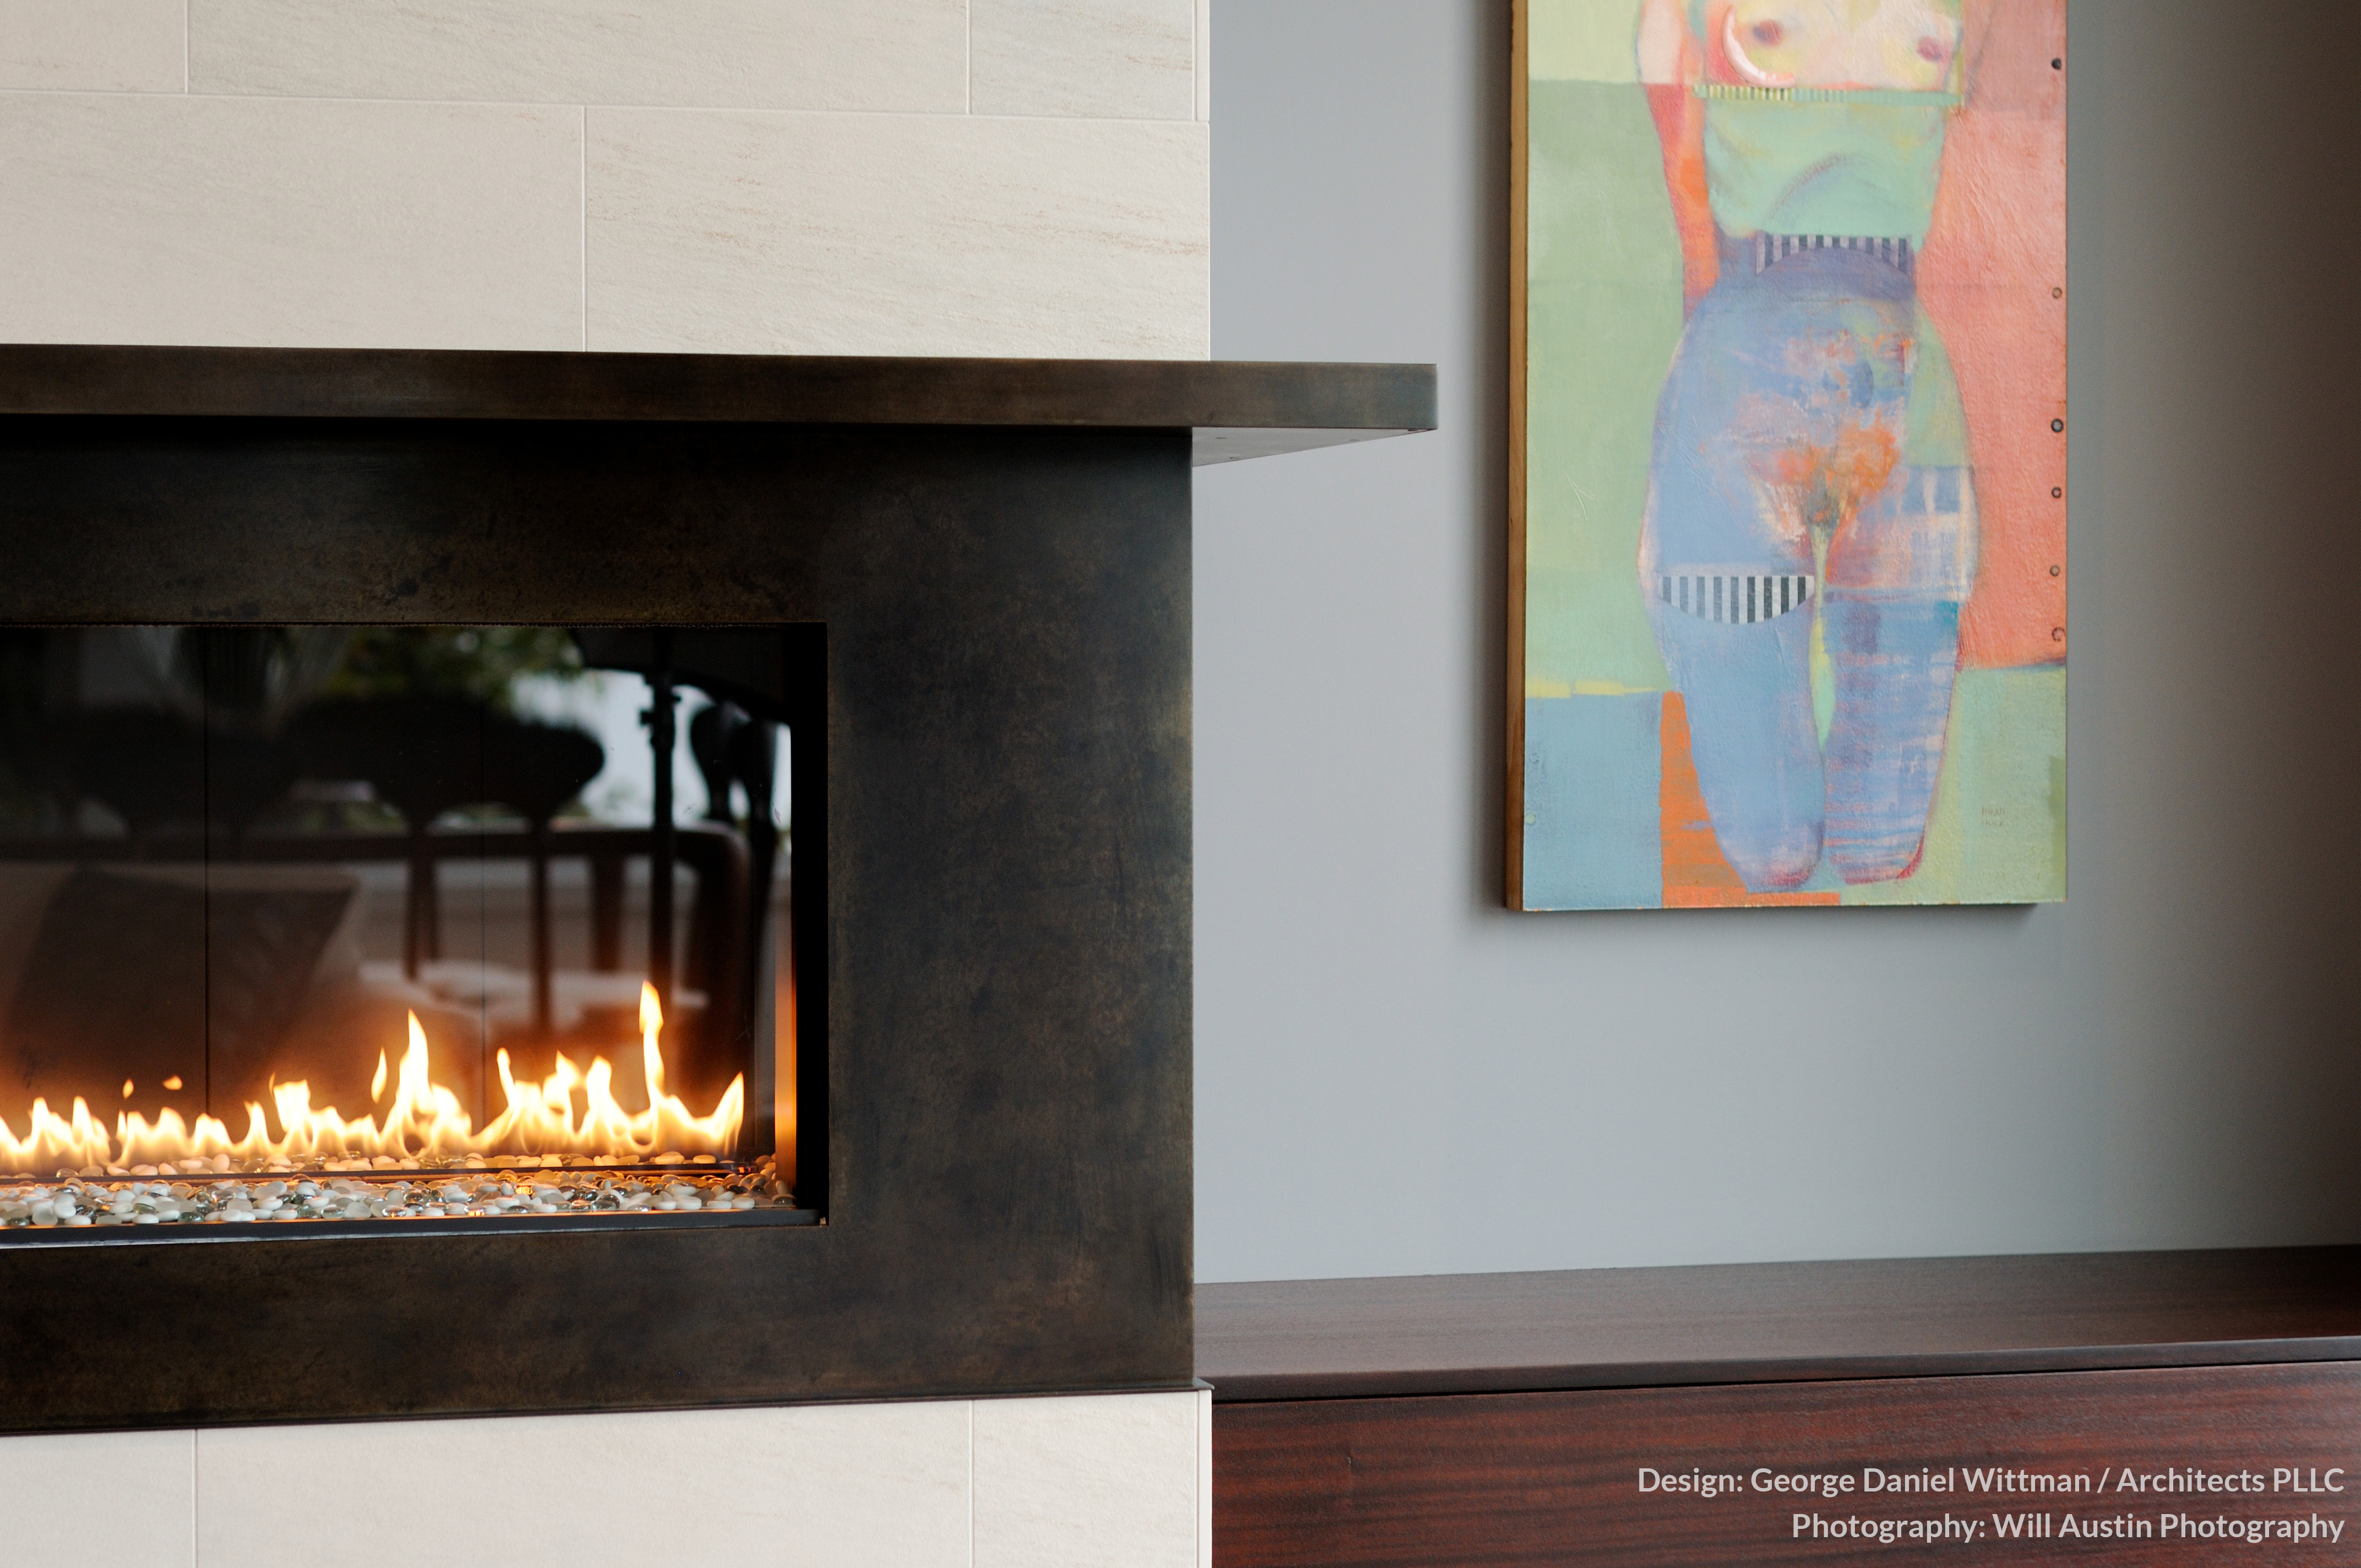 The fireplace, framed in dark metal between layers of white stone, stands in contrast with the soft hues of the wall. An art piece seen in this room exemplifies the style of the home, with striking imagery punctuating a neutral palette.